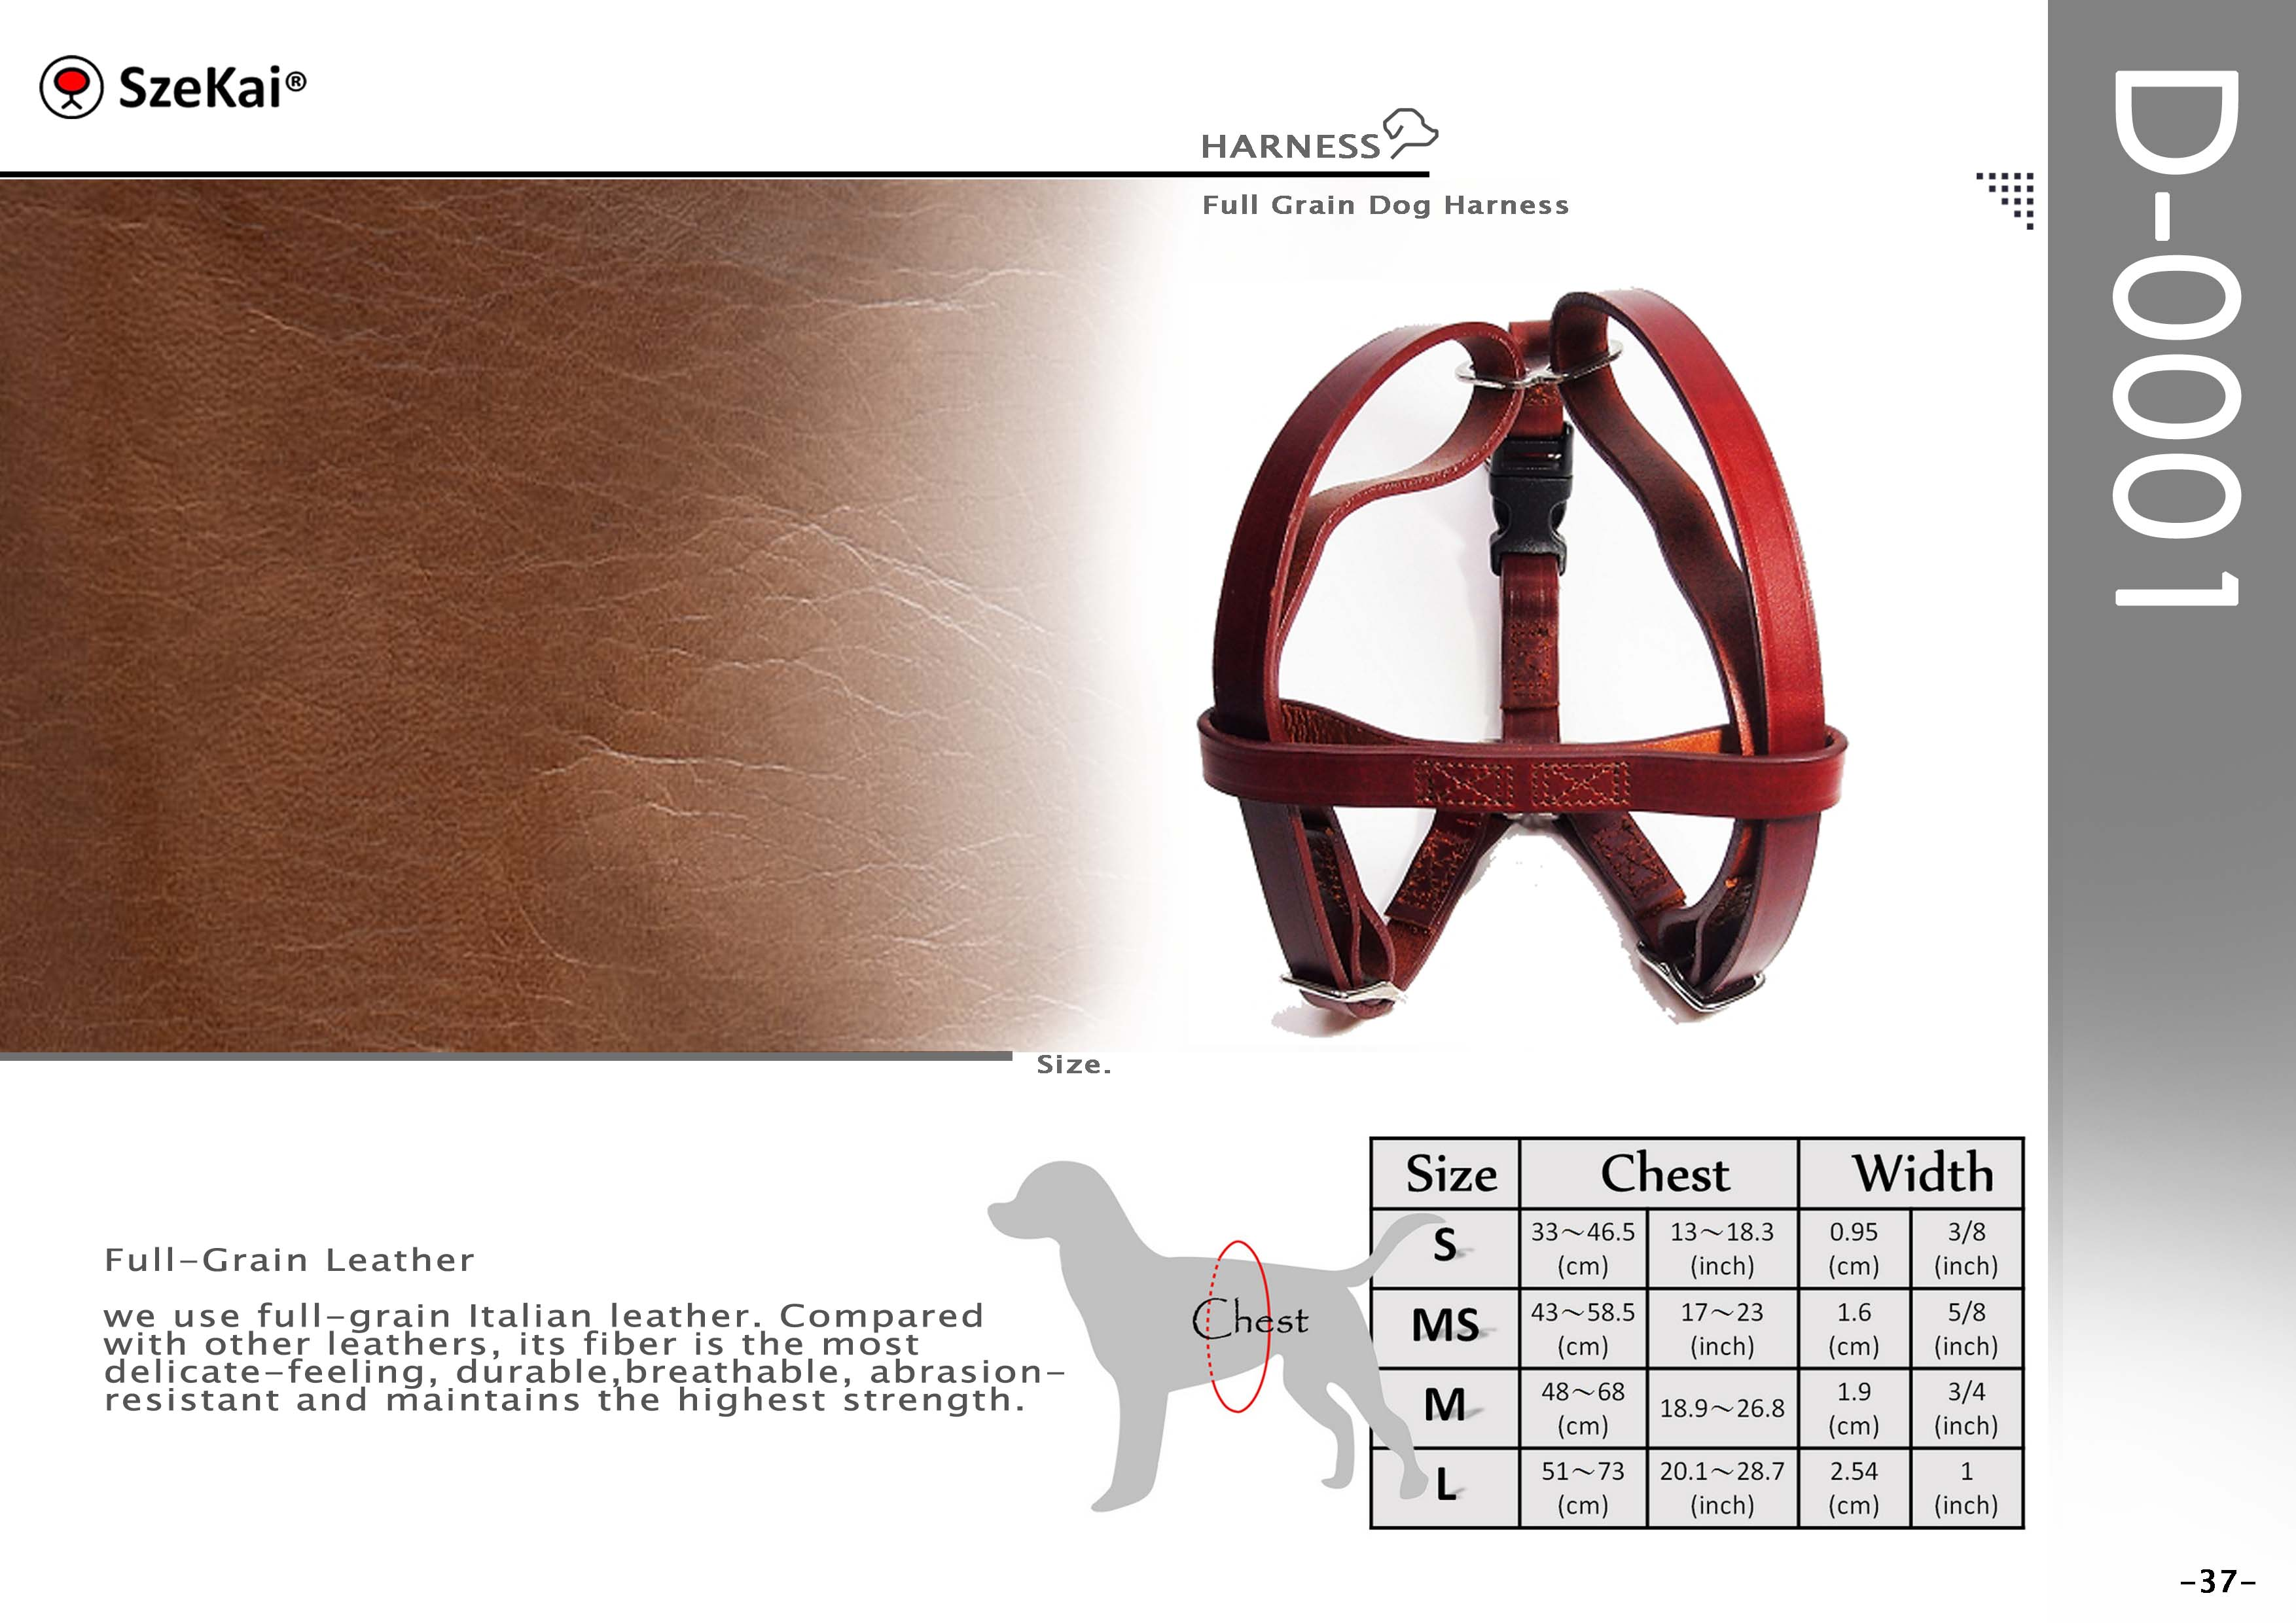 Full-Grain Leather Dog Harness